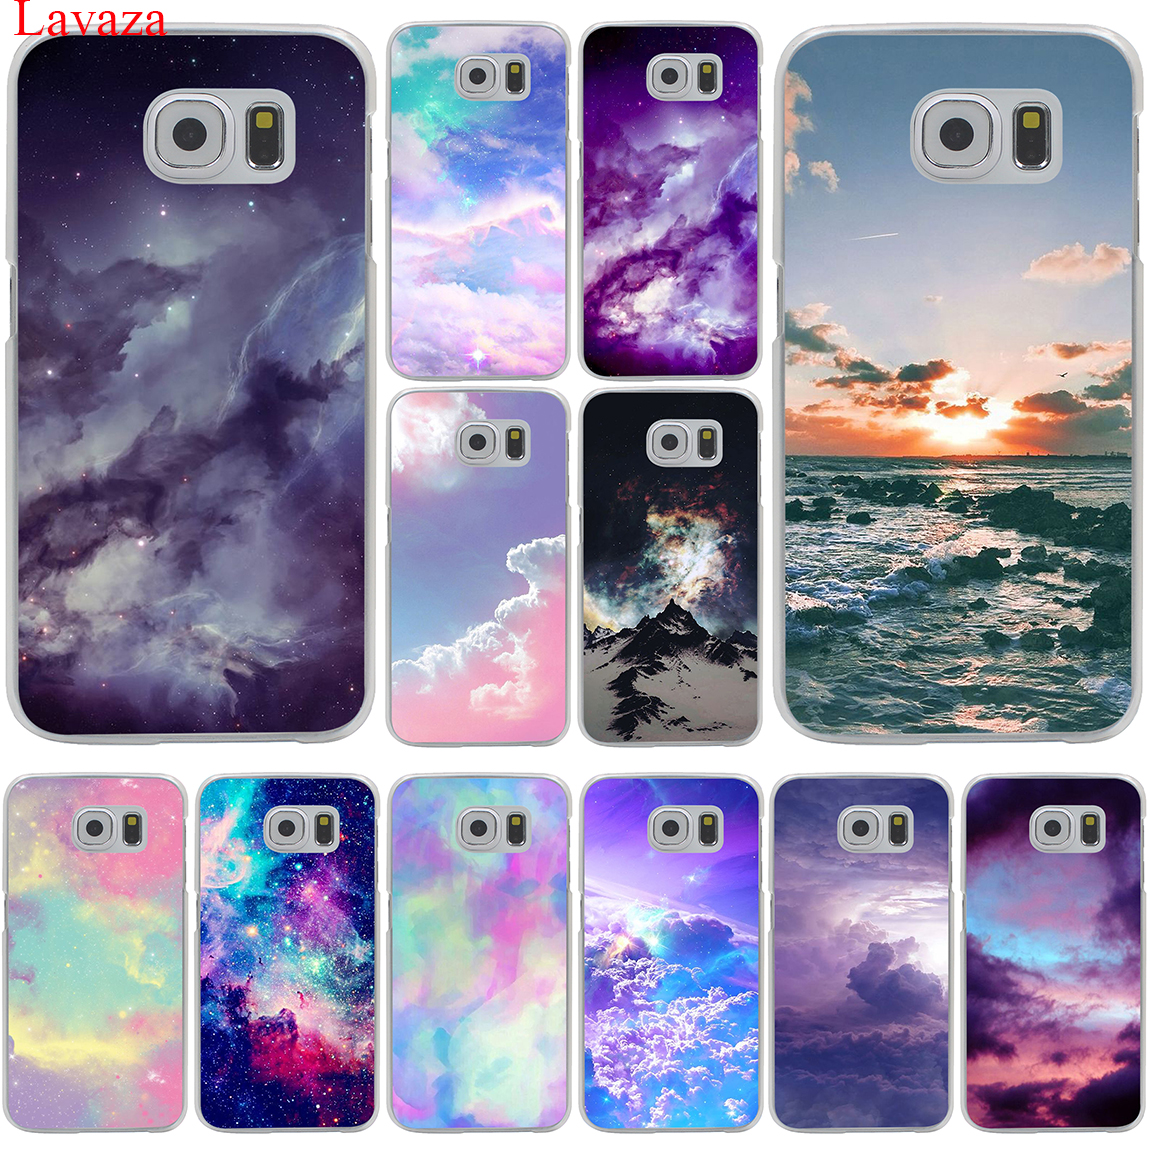 Lavaza Pink cute kawaii sky space Sunset Cloud Art Case Hard for Samsung Galaxy S6 S7 S8 Edge Plus S5 S4 S3 & Mini Cover Clouds